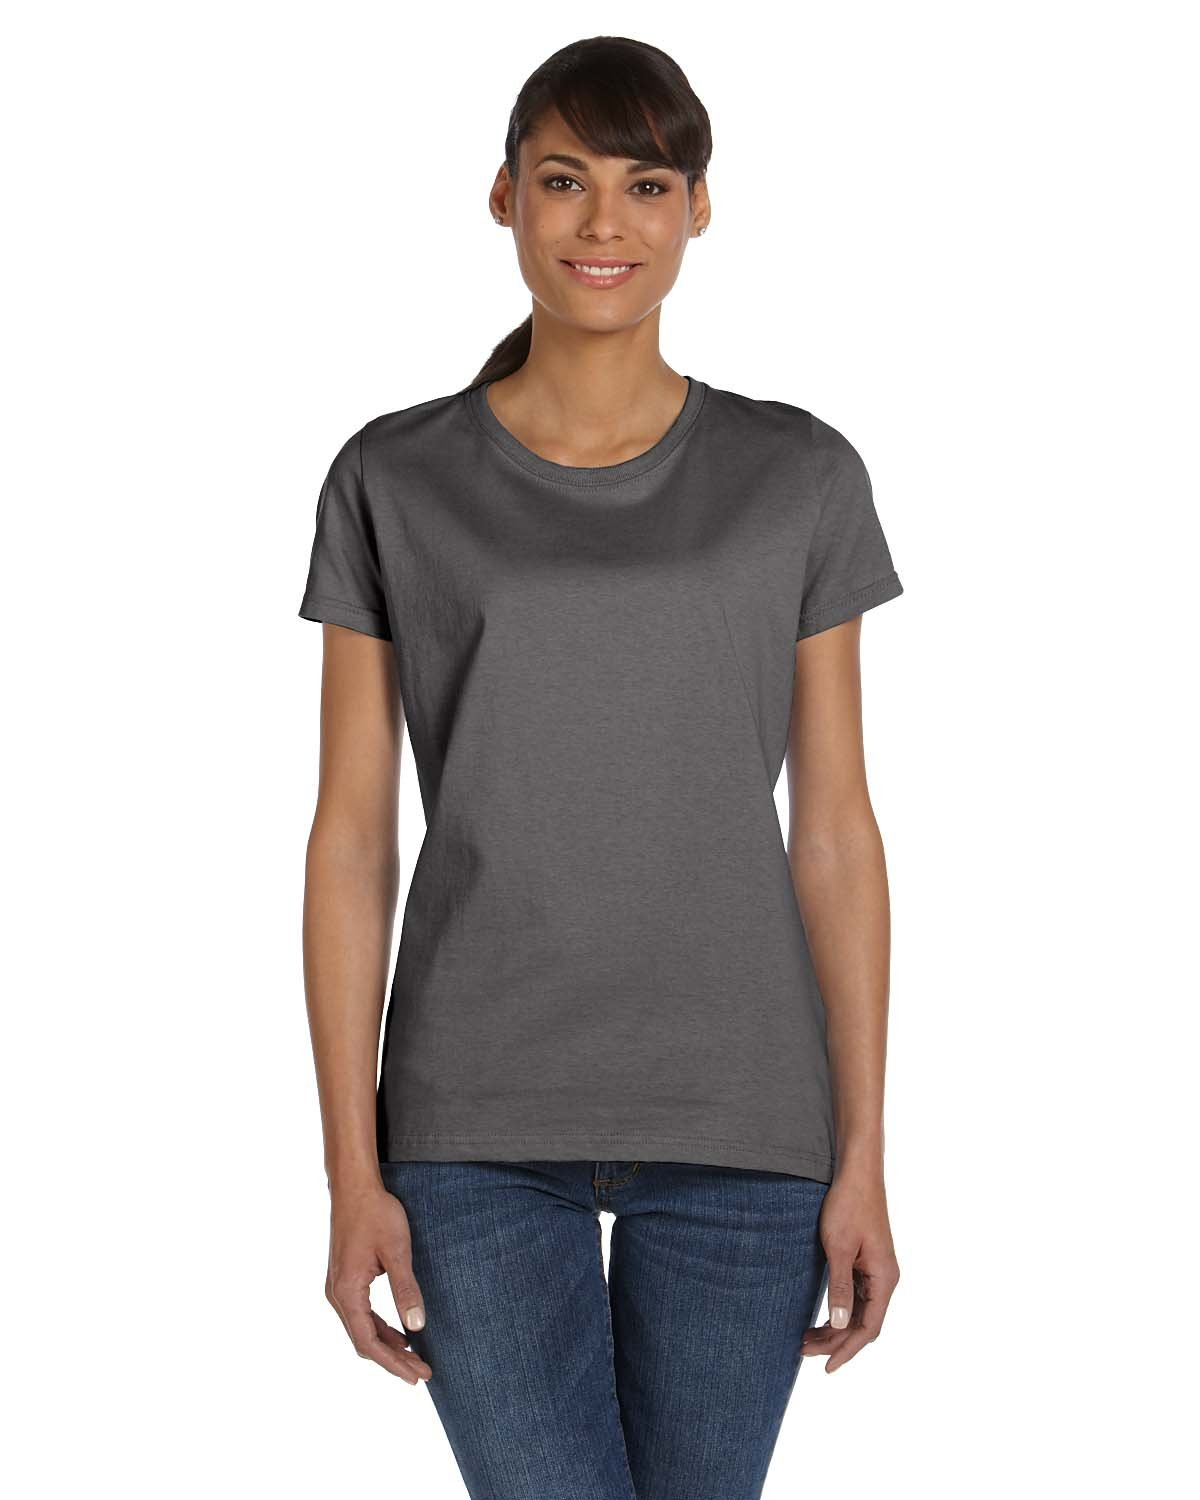 Fruit of the Loom Ladies' HD Cotton™ T-Shirt CHARCOAL GREY